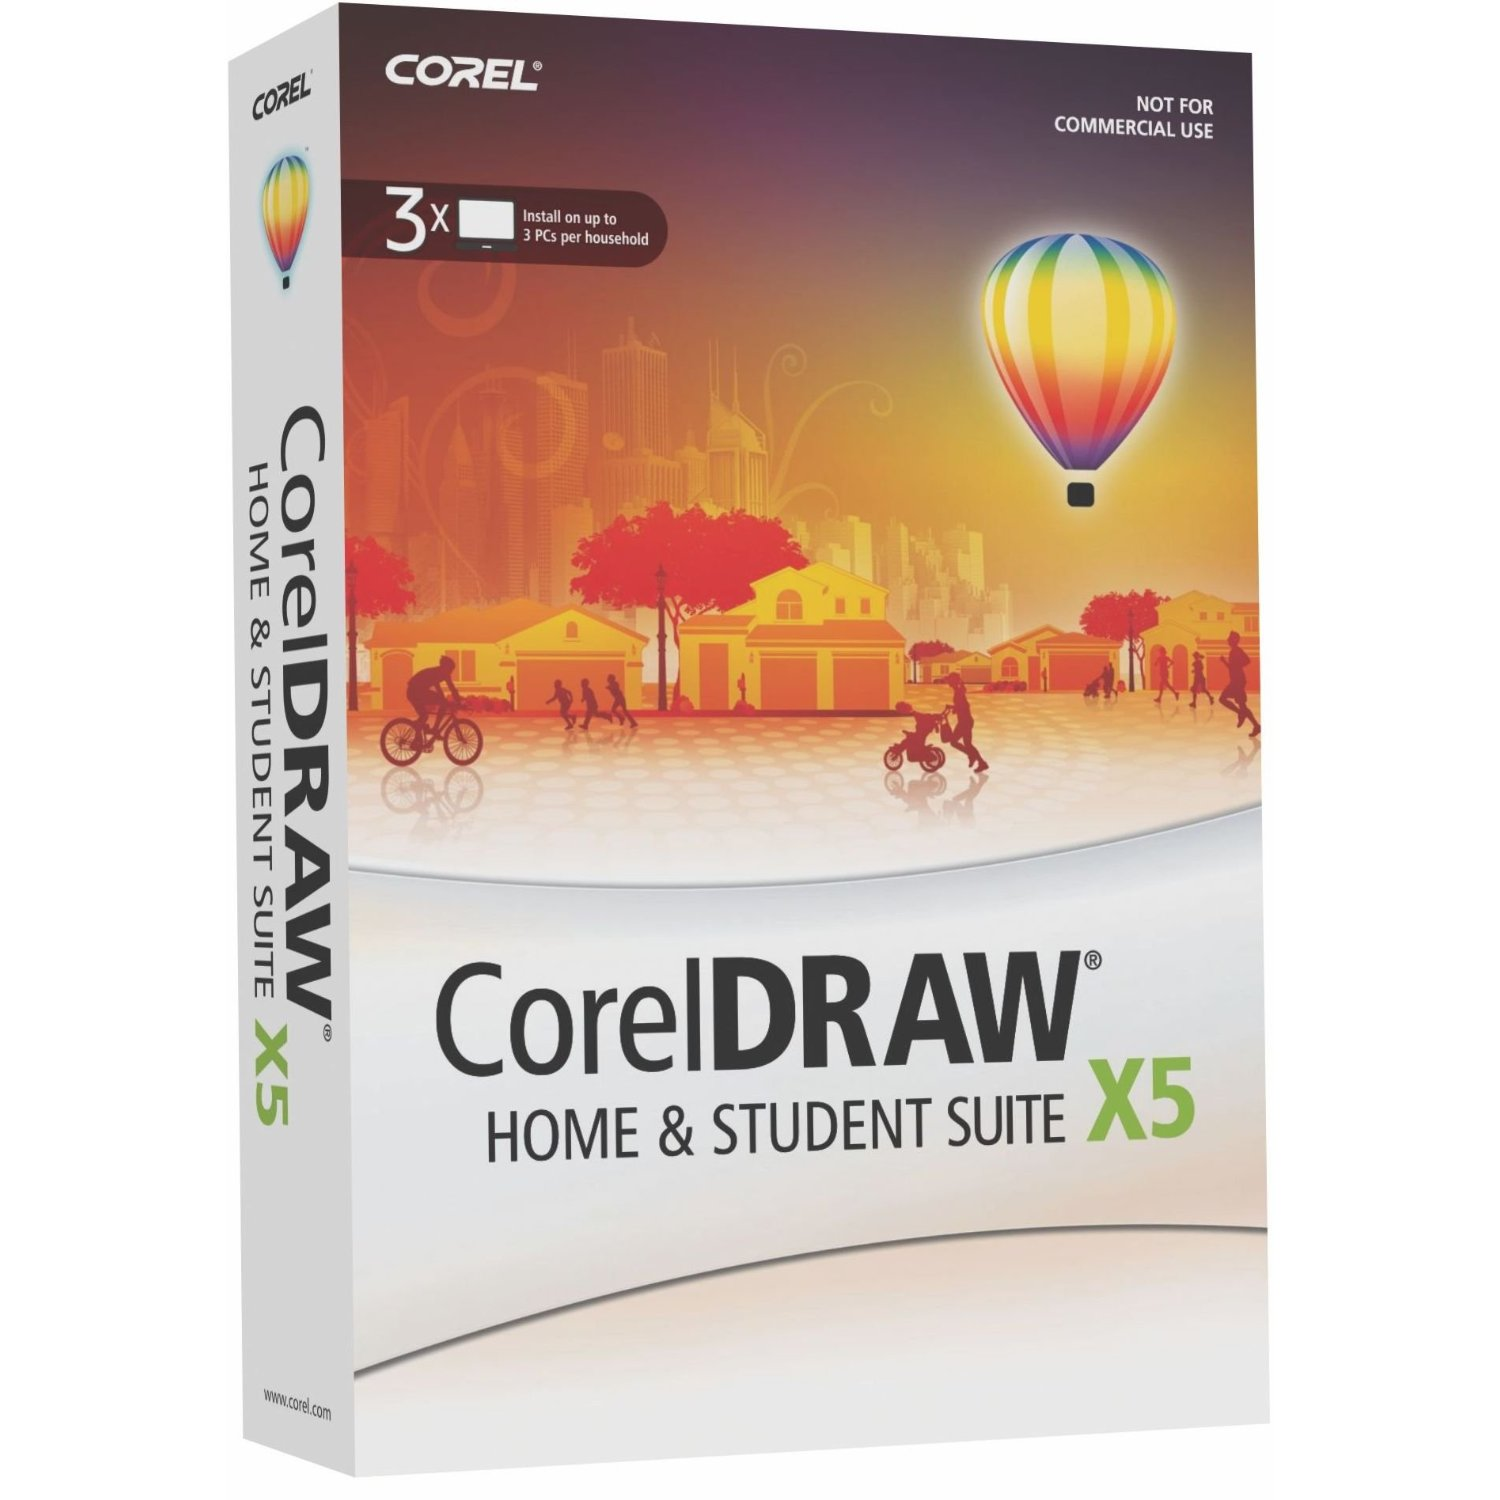 corel draw keygen x5 free download